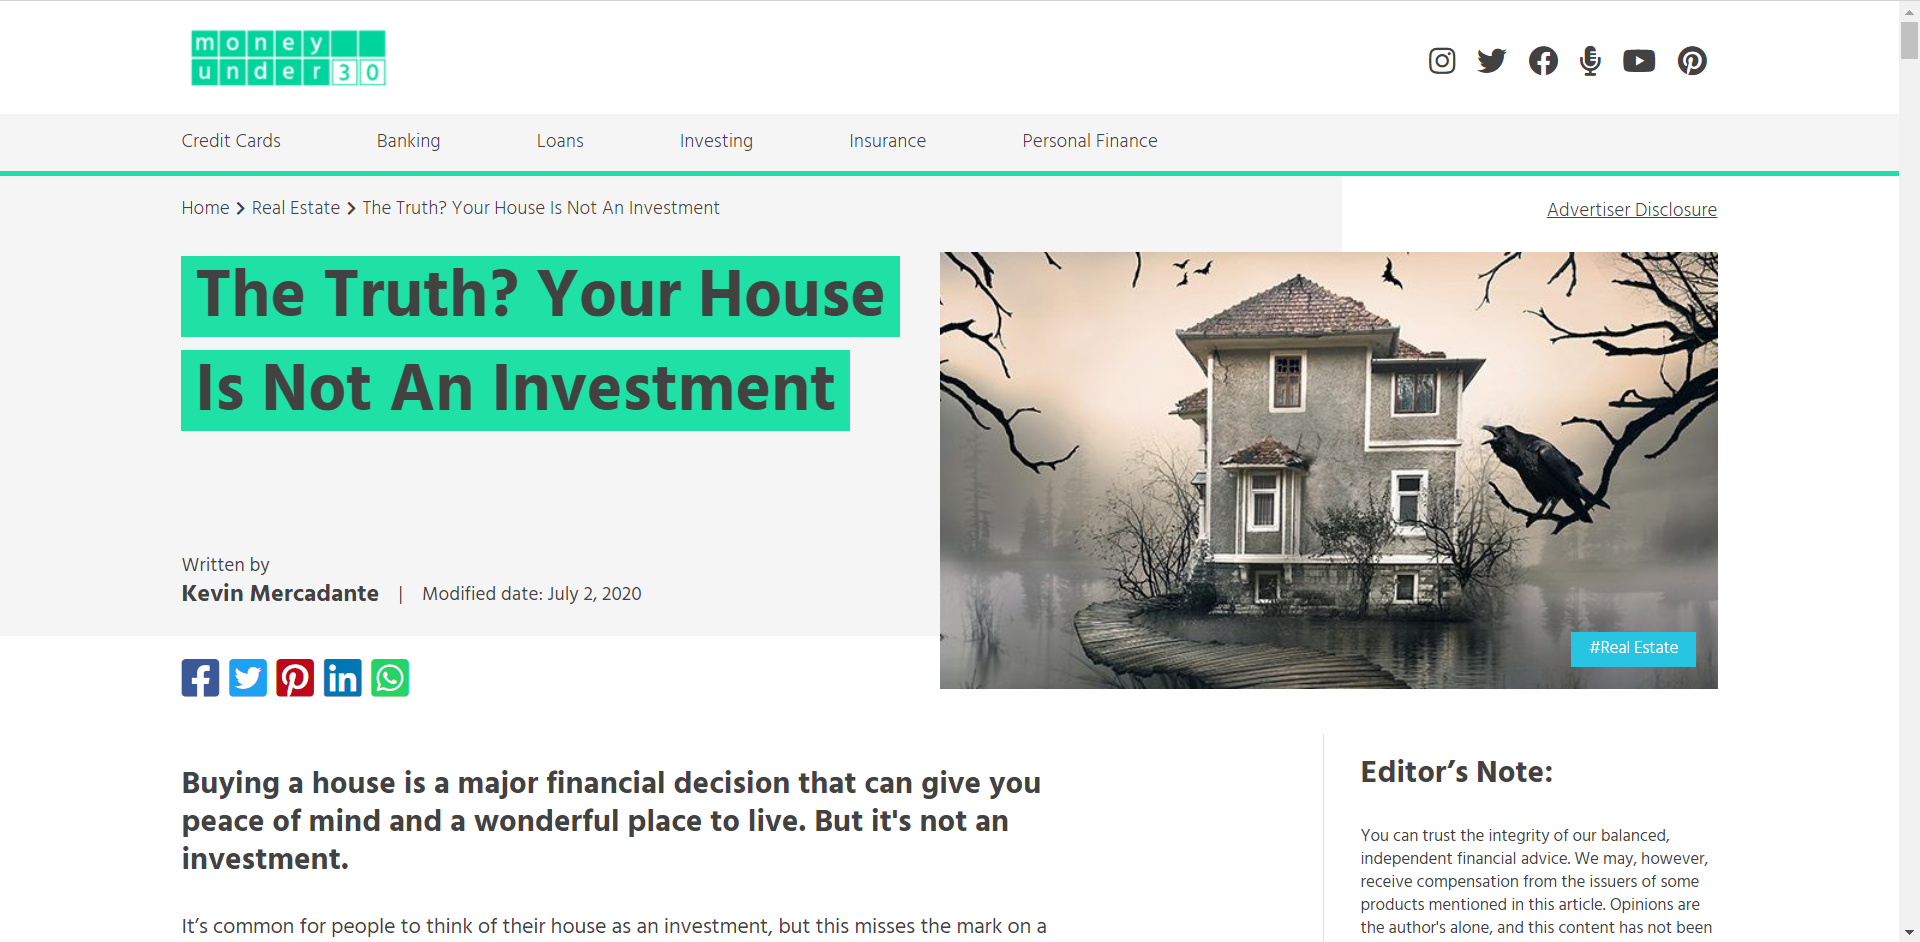 Money Under 30 House Not Investment